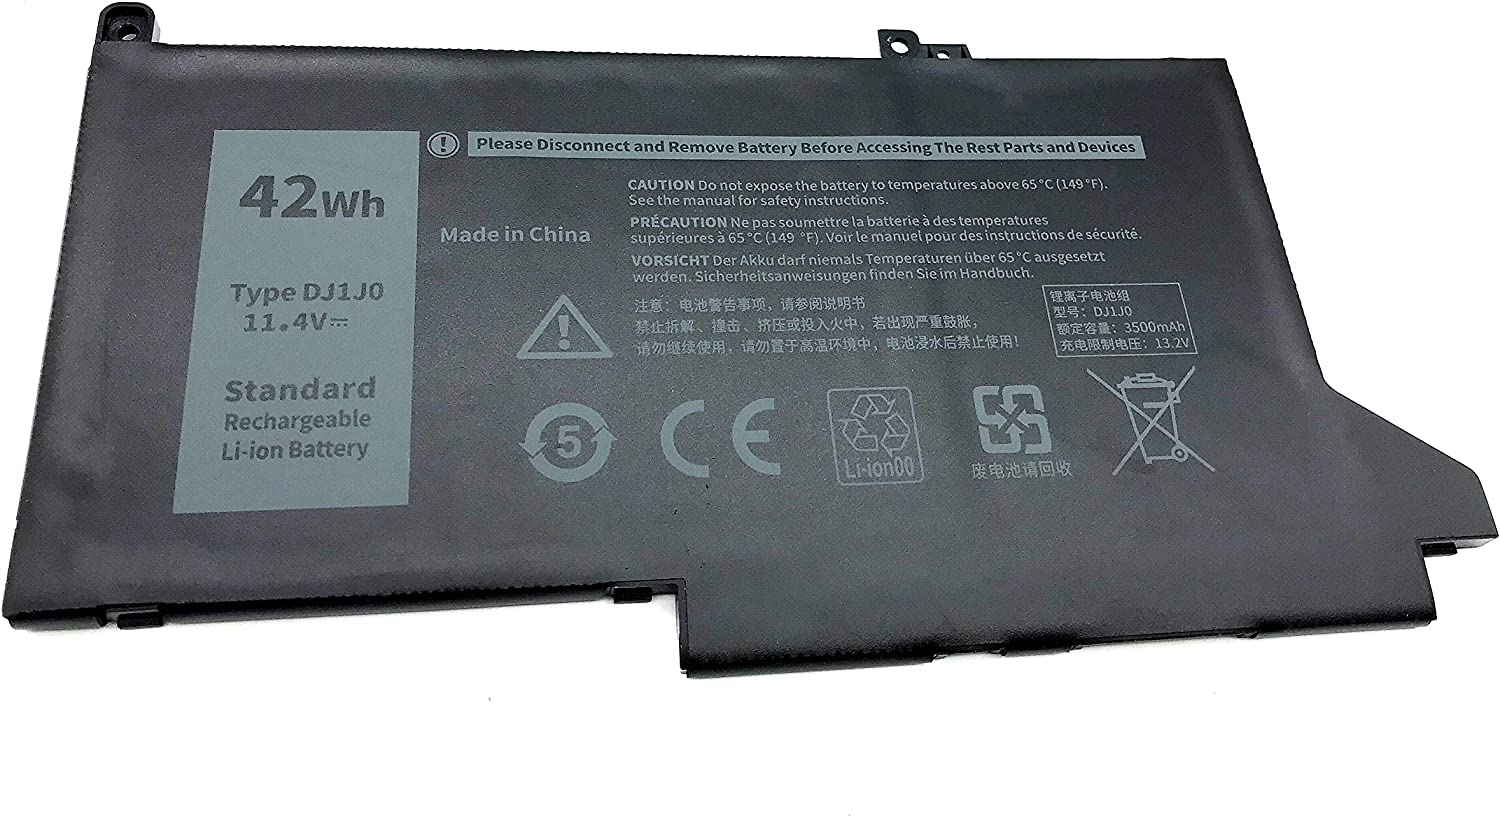 Yafda DJ1J0 11.4V 42Wh New Laptop Battery for Dell Latitude 7280 7480 7380 7290 7390 7490 E7280 E7380 E7480 E7290 E7390 E7490 Series 451-BBZL PGFX4 ONFOH DJ1JO